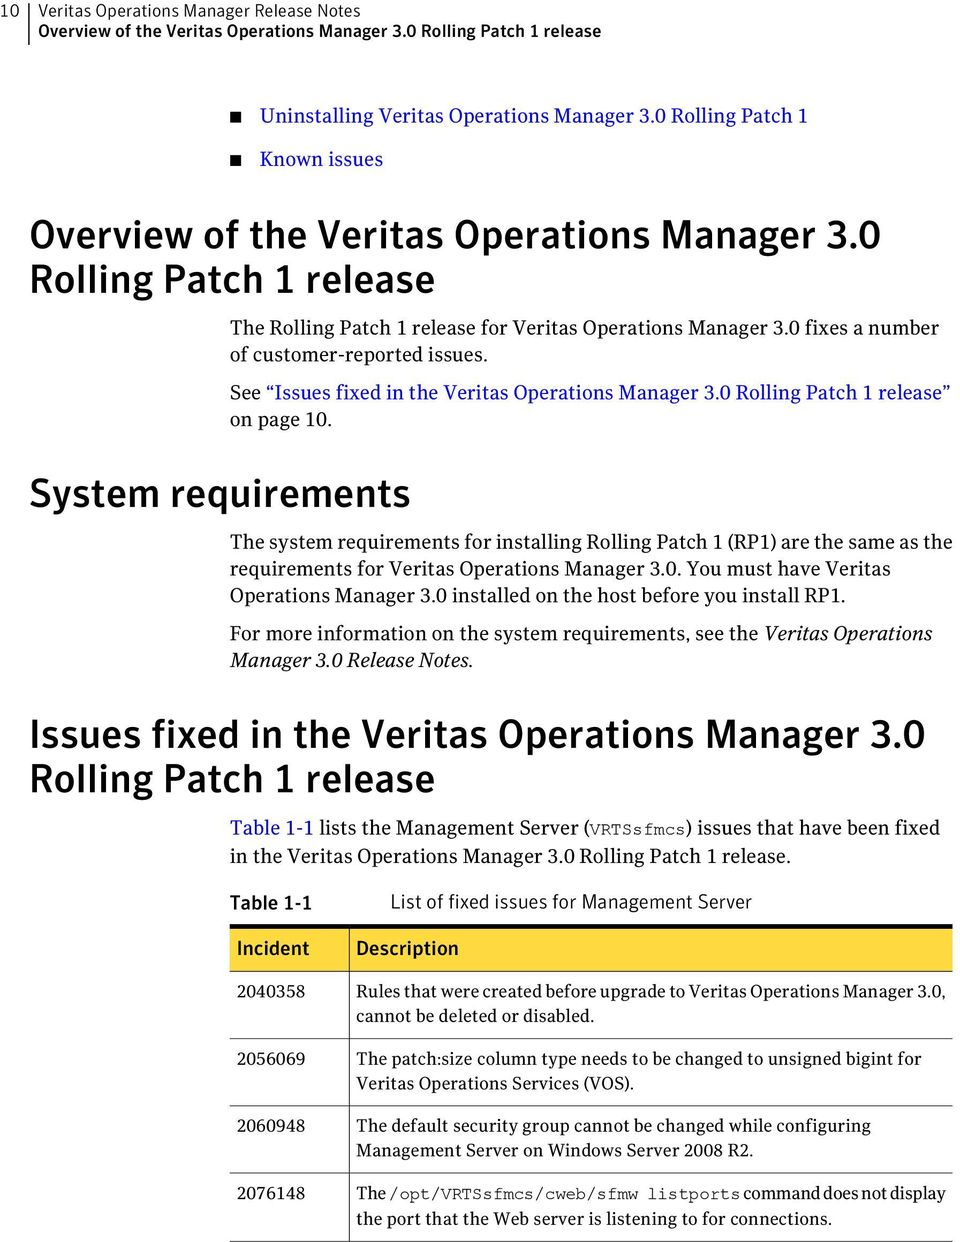 0 fixes a number of customer-reported issues. See Issues fixed in the Veritas Operations Manager 3.0 Rolling Patch 1 release on page 10.